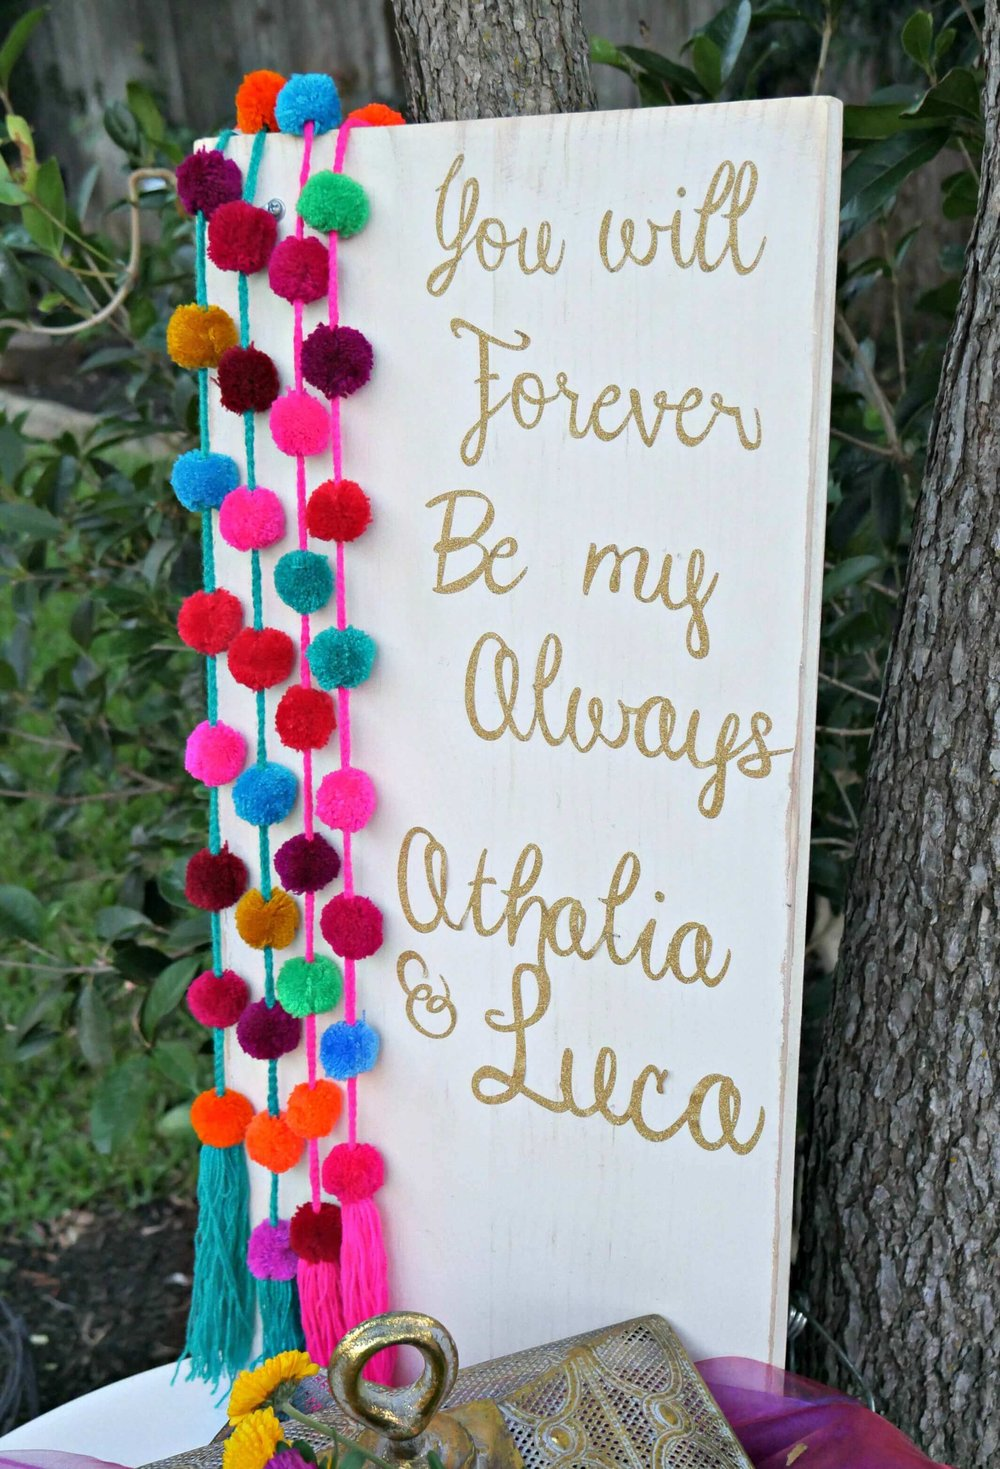 Create a DIY welcome sign using Cricut for any party - then the party guest can use it as home decor after the celebration. Designed by Mint Event Design in Austin Texas www.minteventdesign.com #engagementideas #welcometable #welcomesign #bohochic